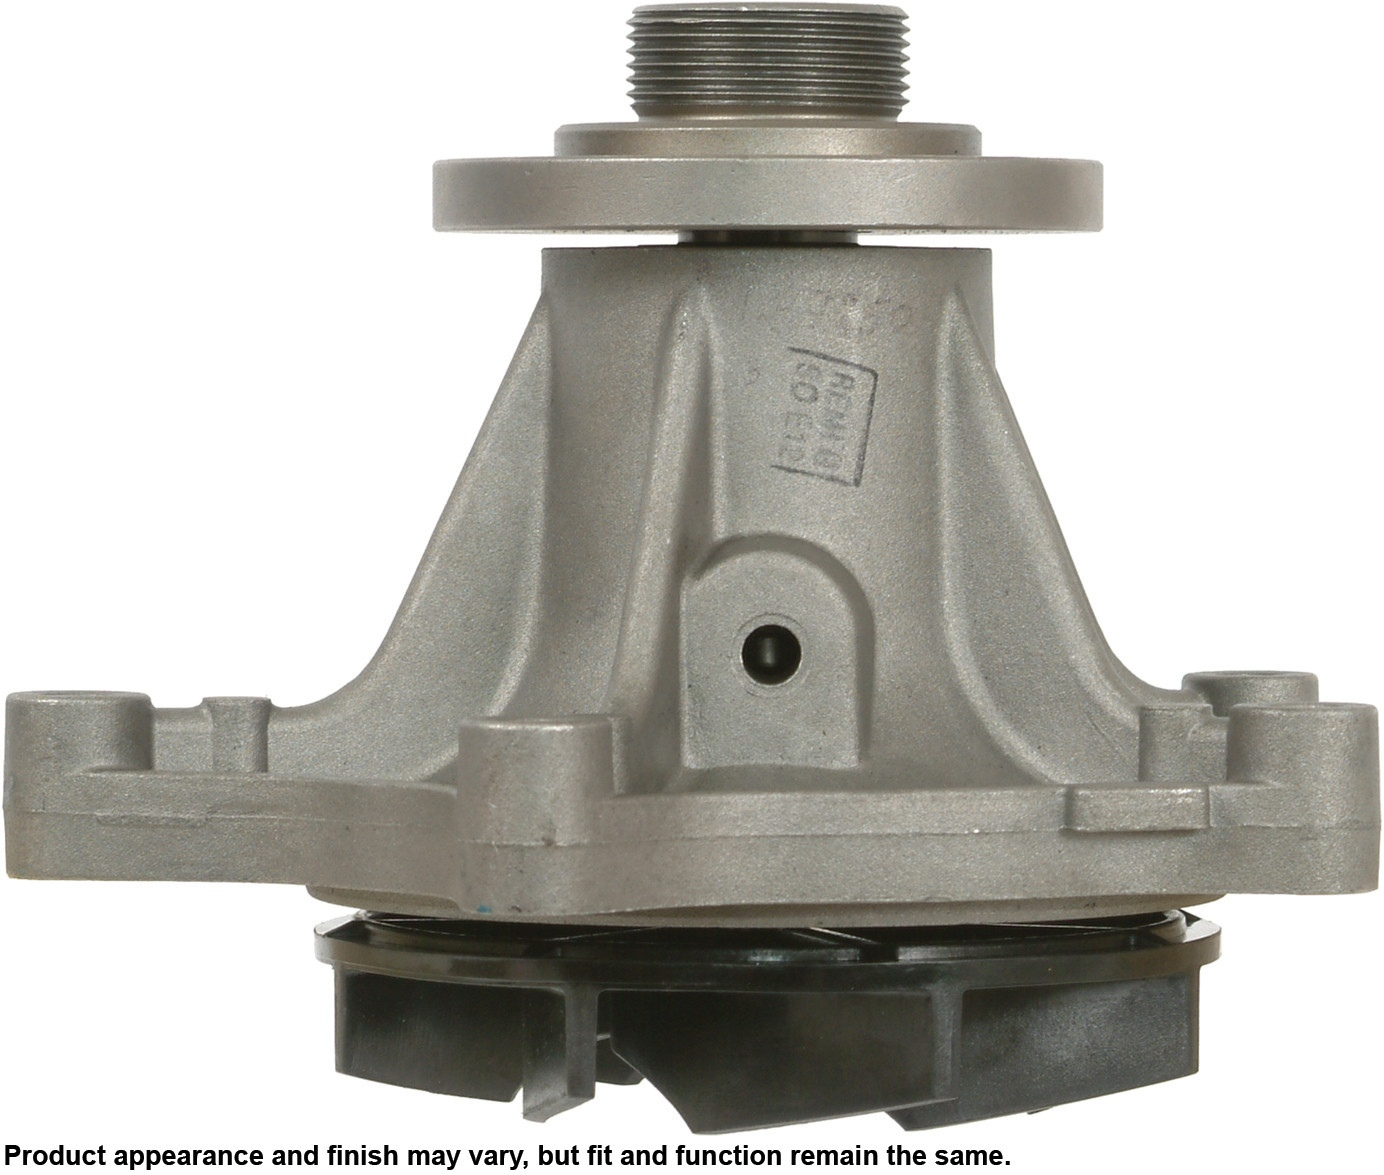 Ford F 250 Super Duty 2000 Remanufactured: Engine Water Pump-Water Pump Reman Fits 08-10 Ford F-250